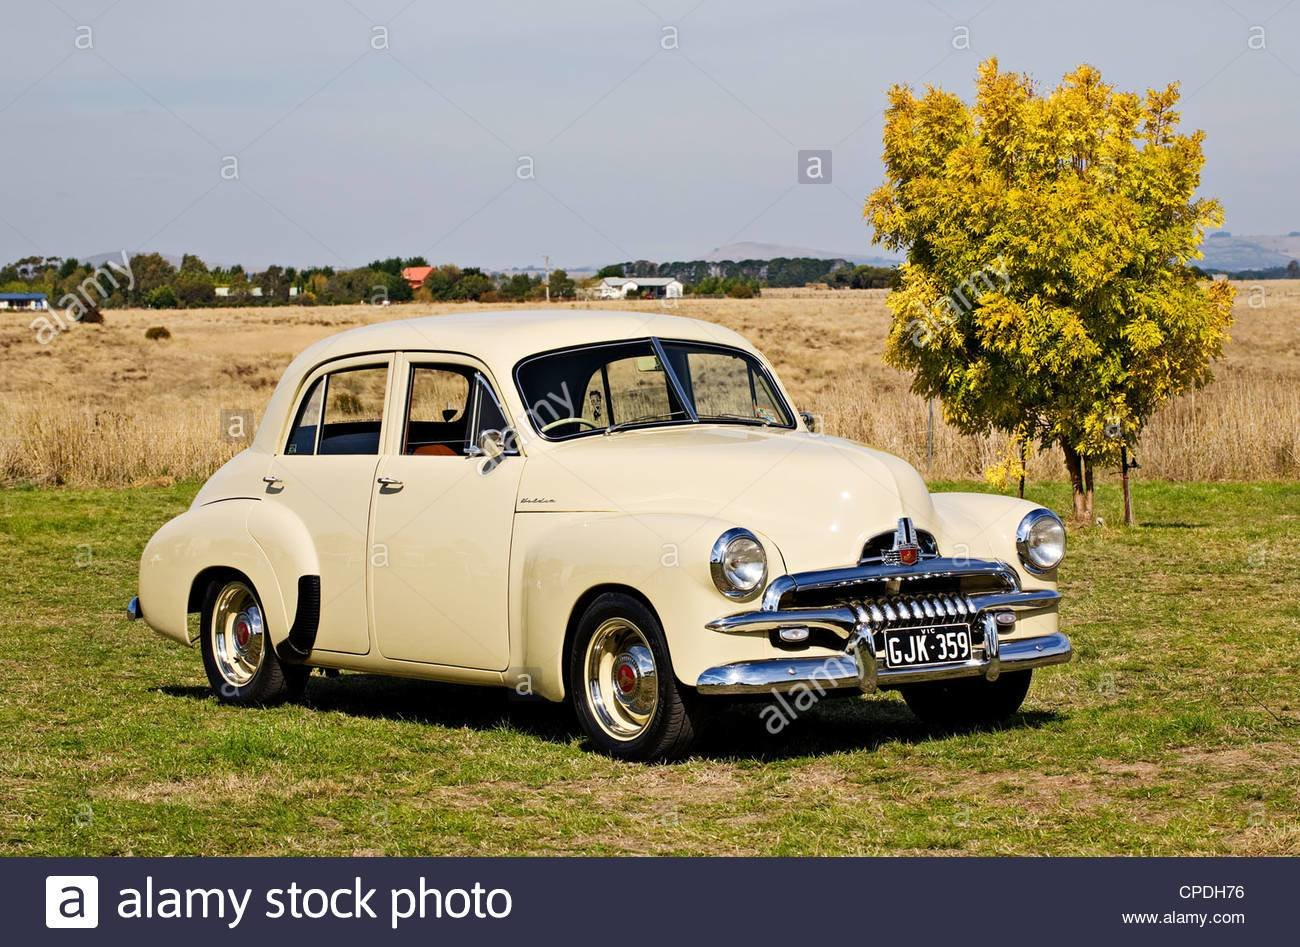 New Fj Holden Stock Photos Fj Holden Stock Images Alamy On This Month